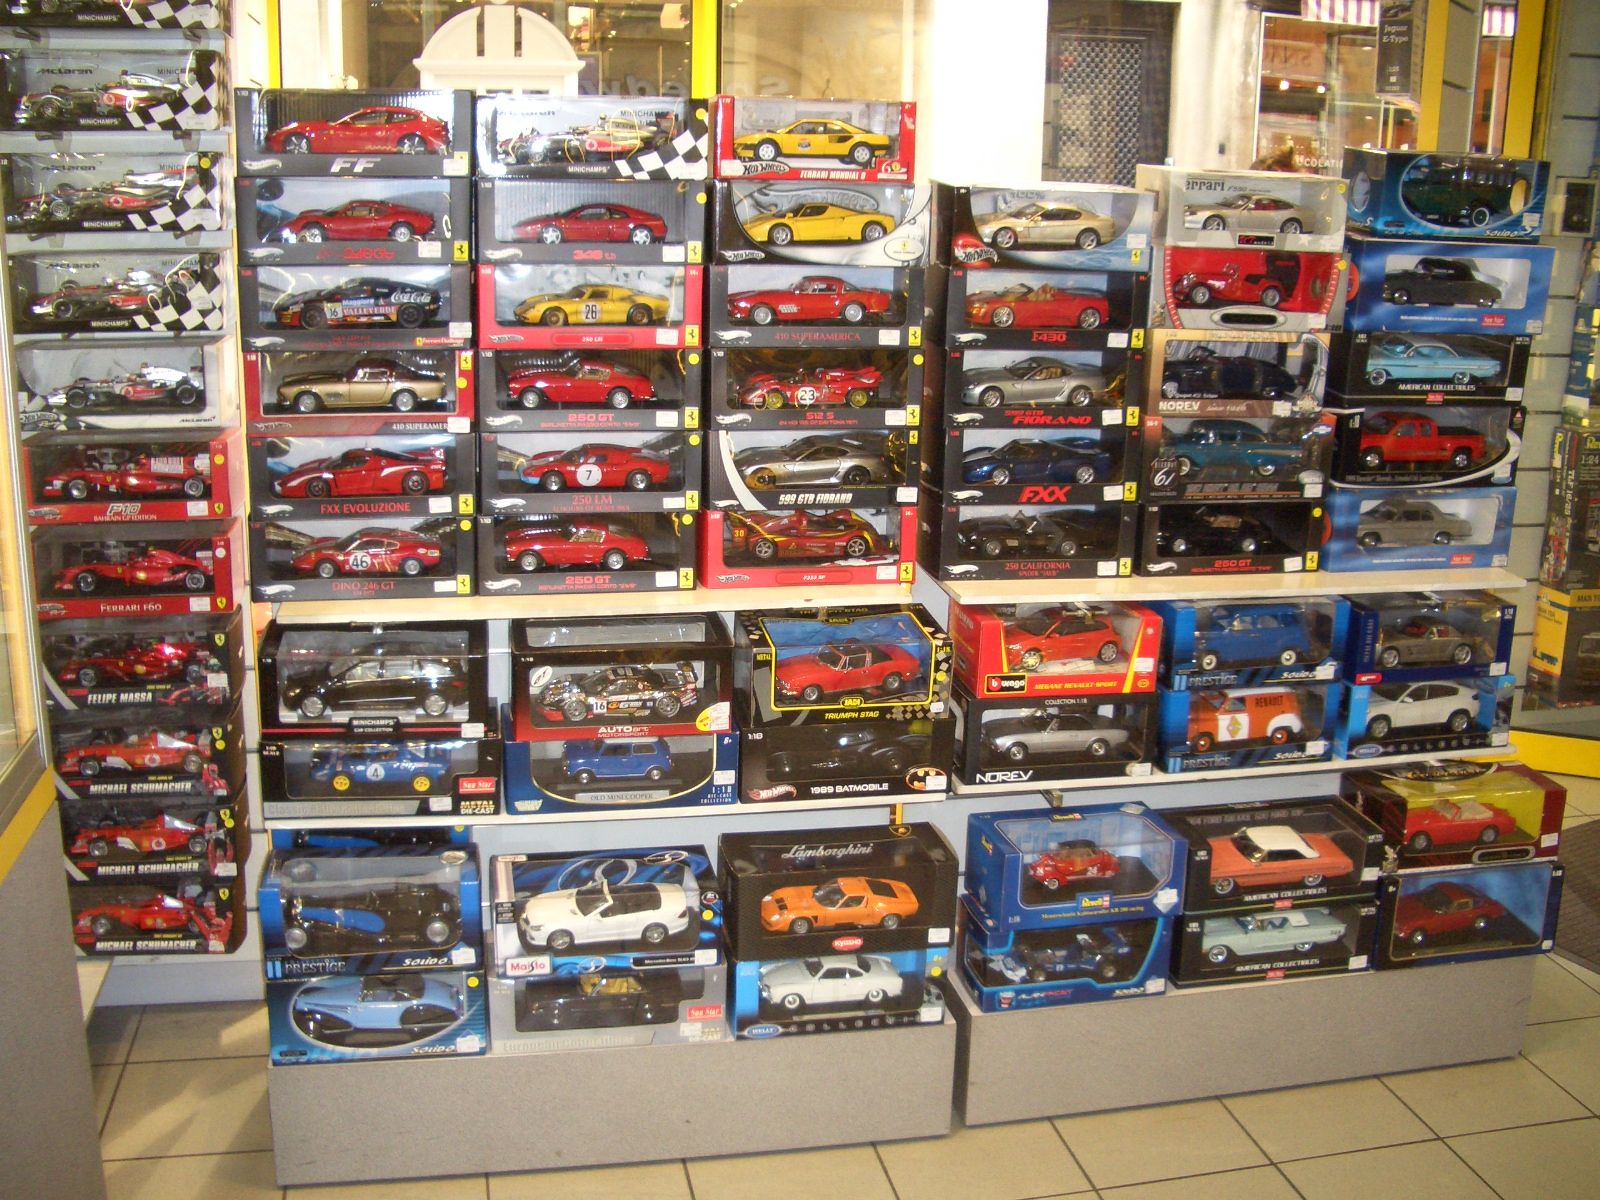 Magasin Cheminee Electrique Paris Magasin Modelisme Rc Modelisme